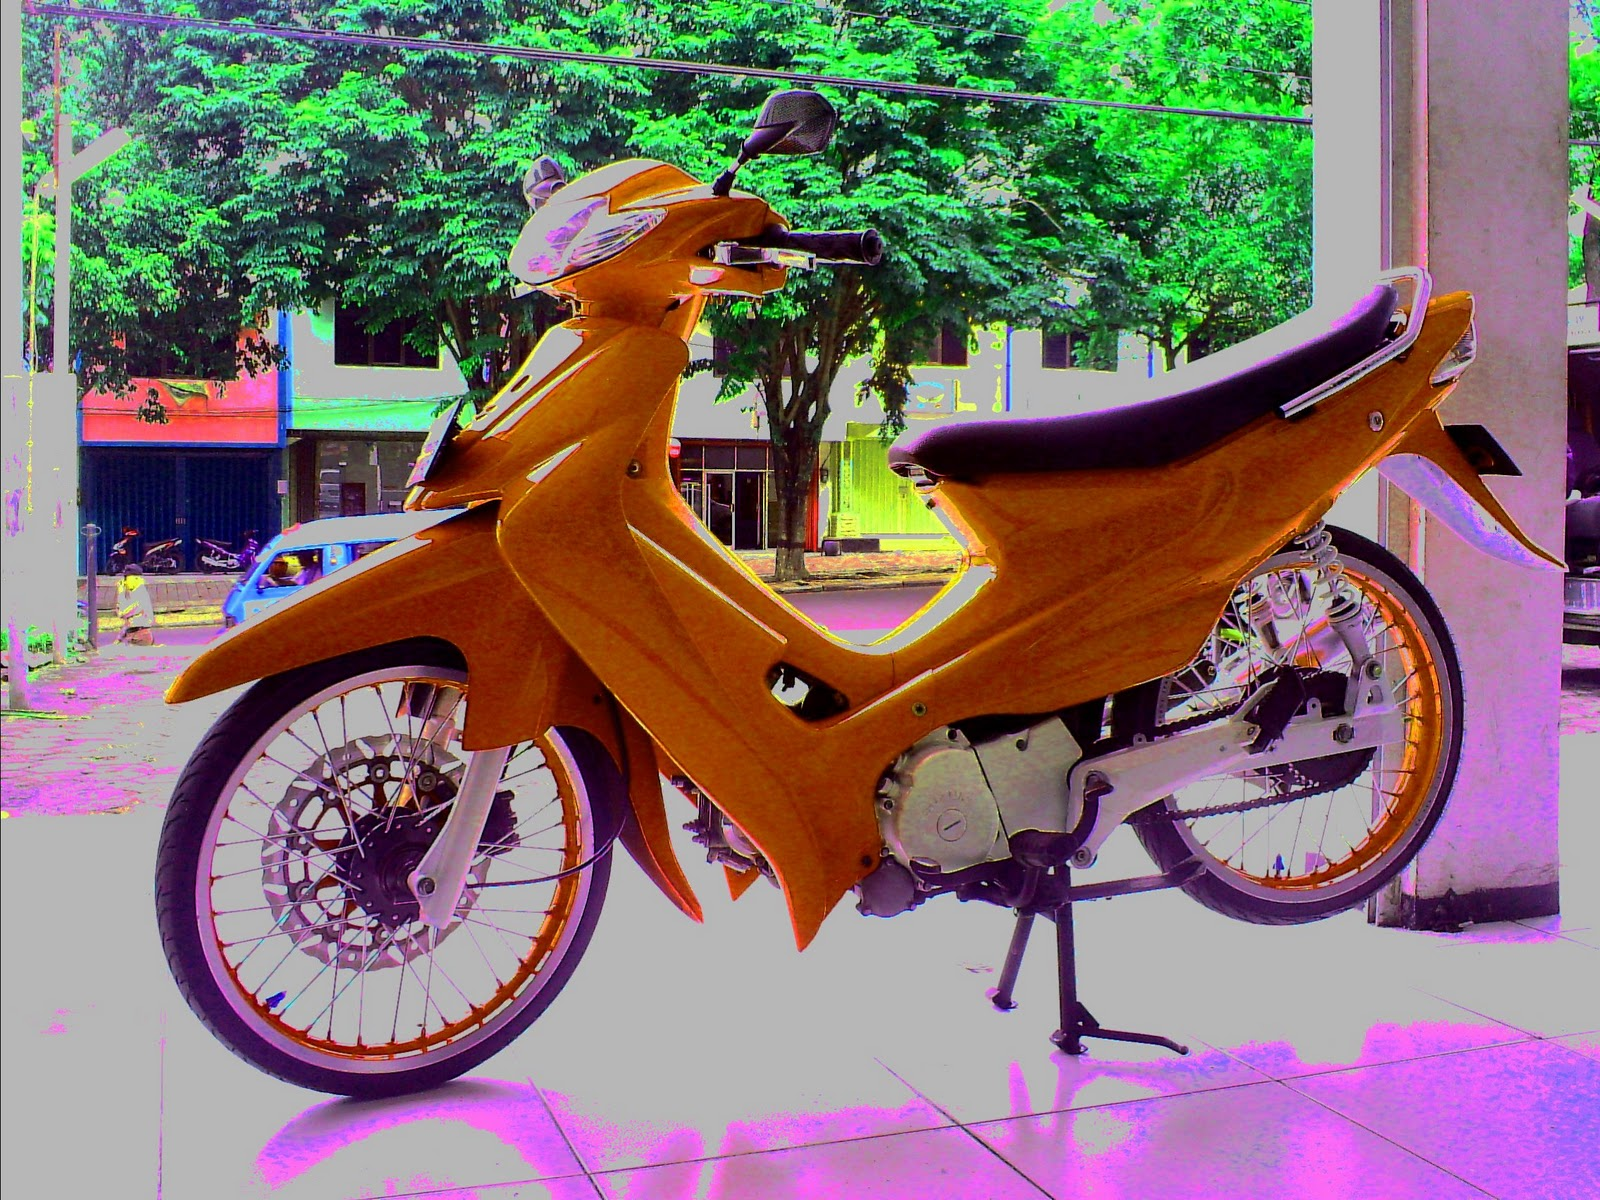 suzuki smash indonesia ~ automotif trend modification